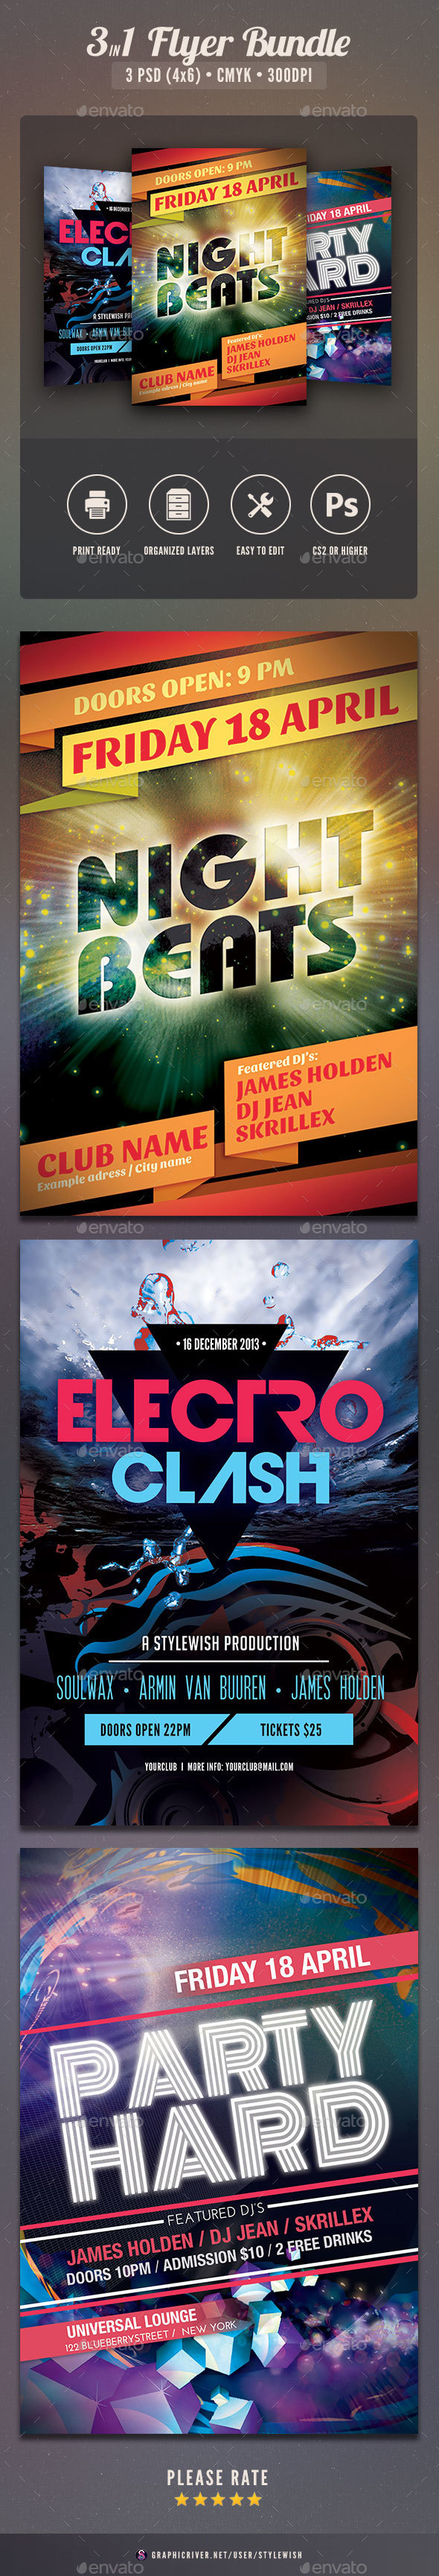 Party Flyer Bundle Vol.23 - Clubs & Parties Events